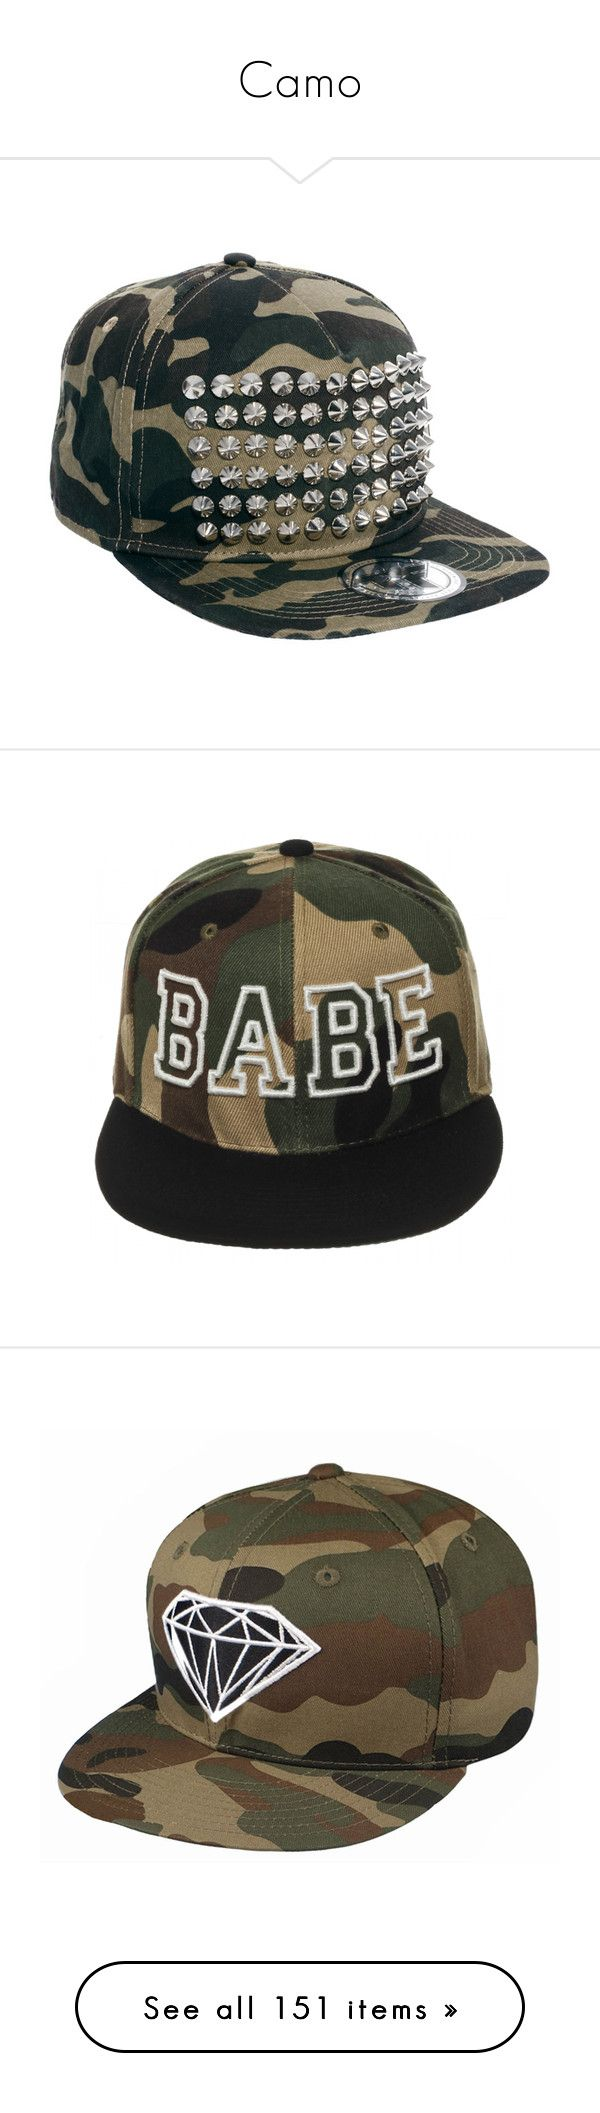 """""""Camo"""" by robinnnnnnn ❤ liked on Polyvore featuring accessories, hats, snapbacks, camouflage, crown hat, camo snapback hats, cotton hat, camouflage snapback hats, camouflage hats and camo"""